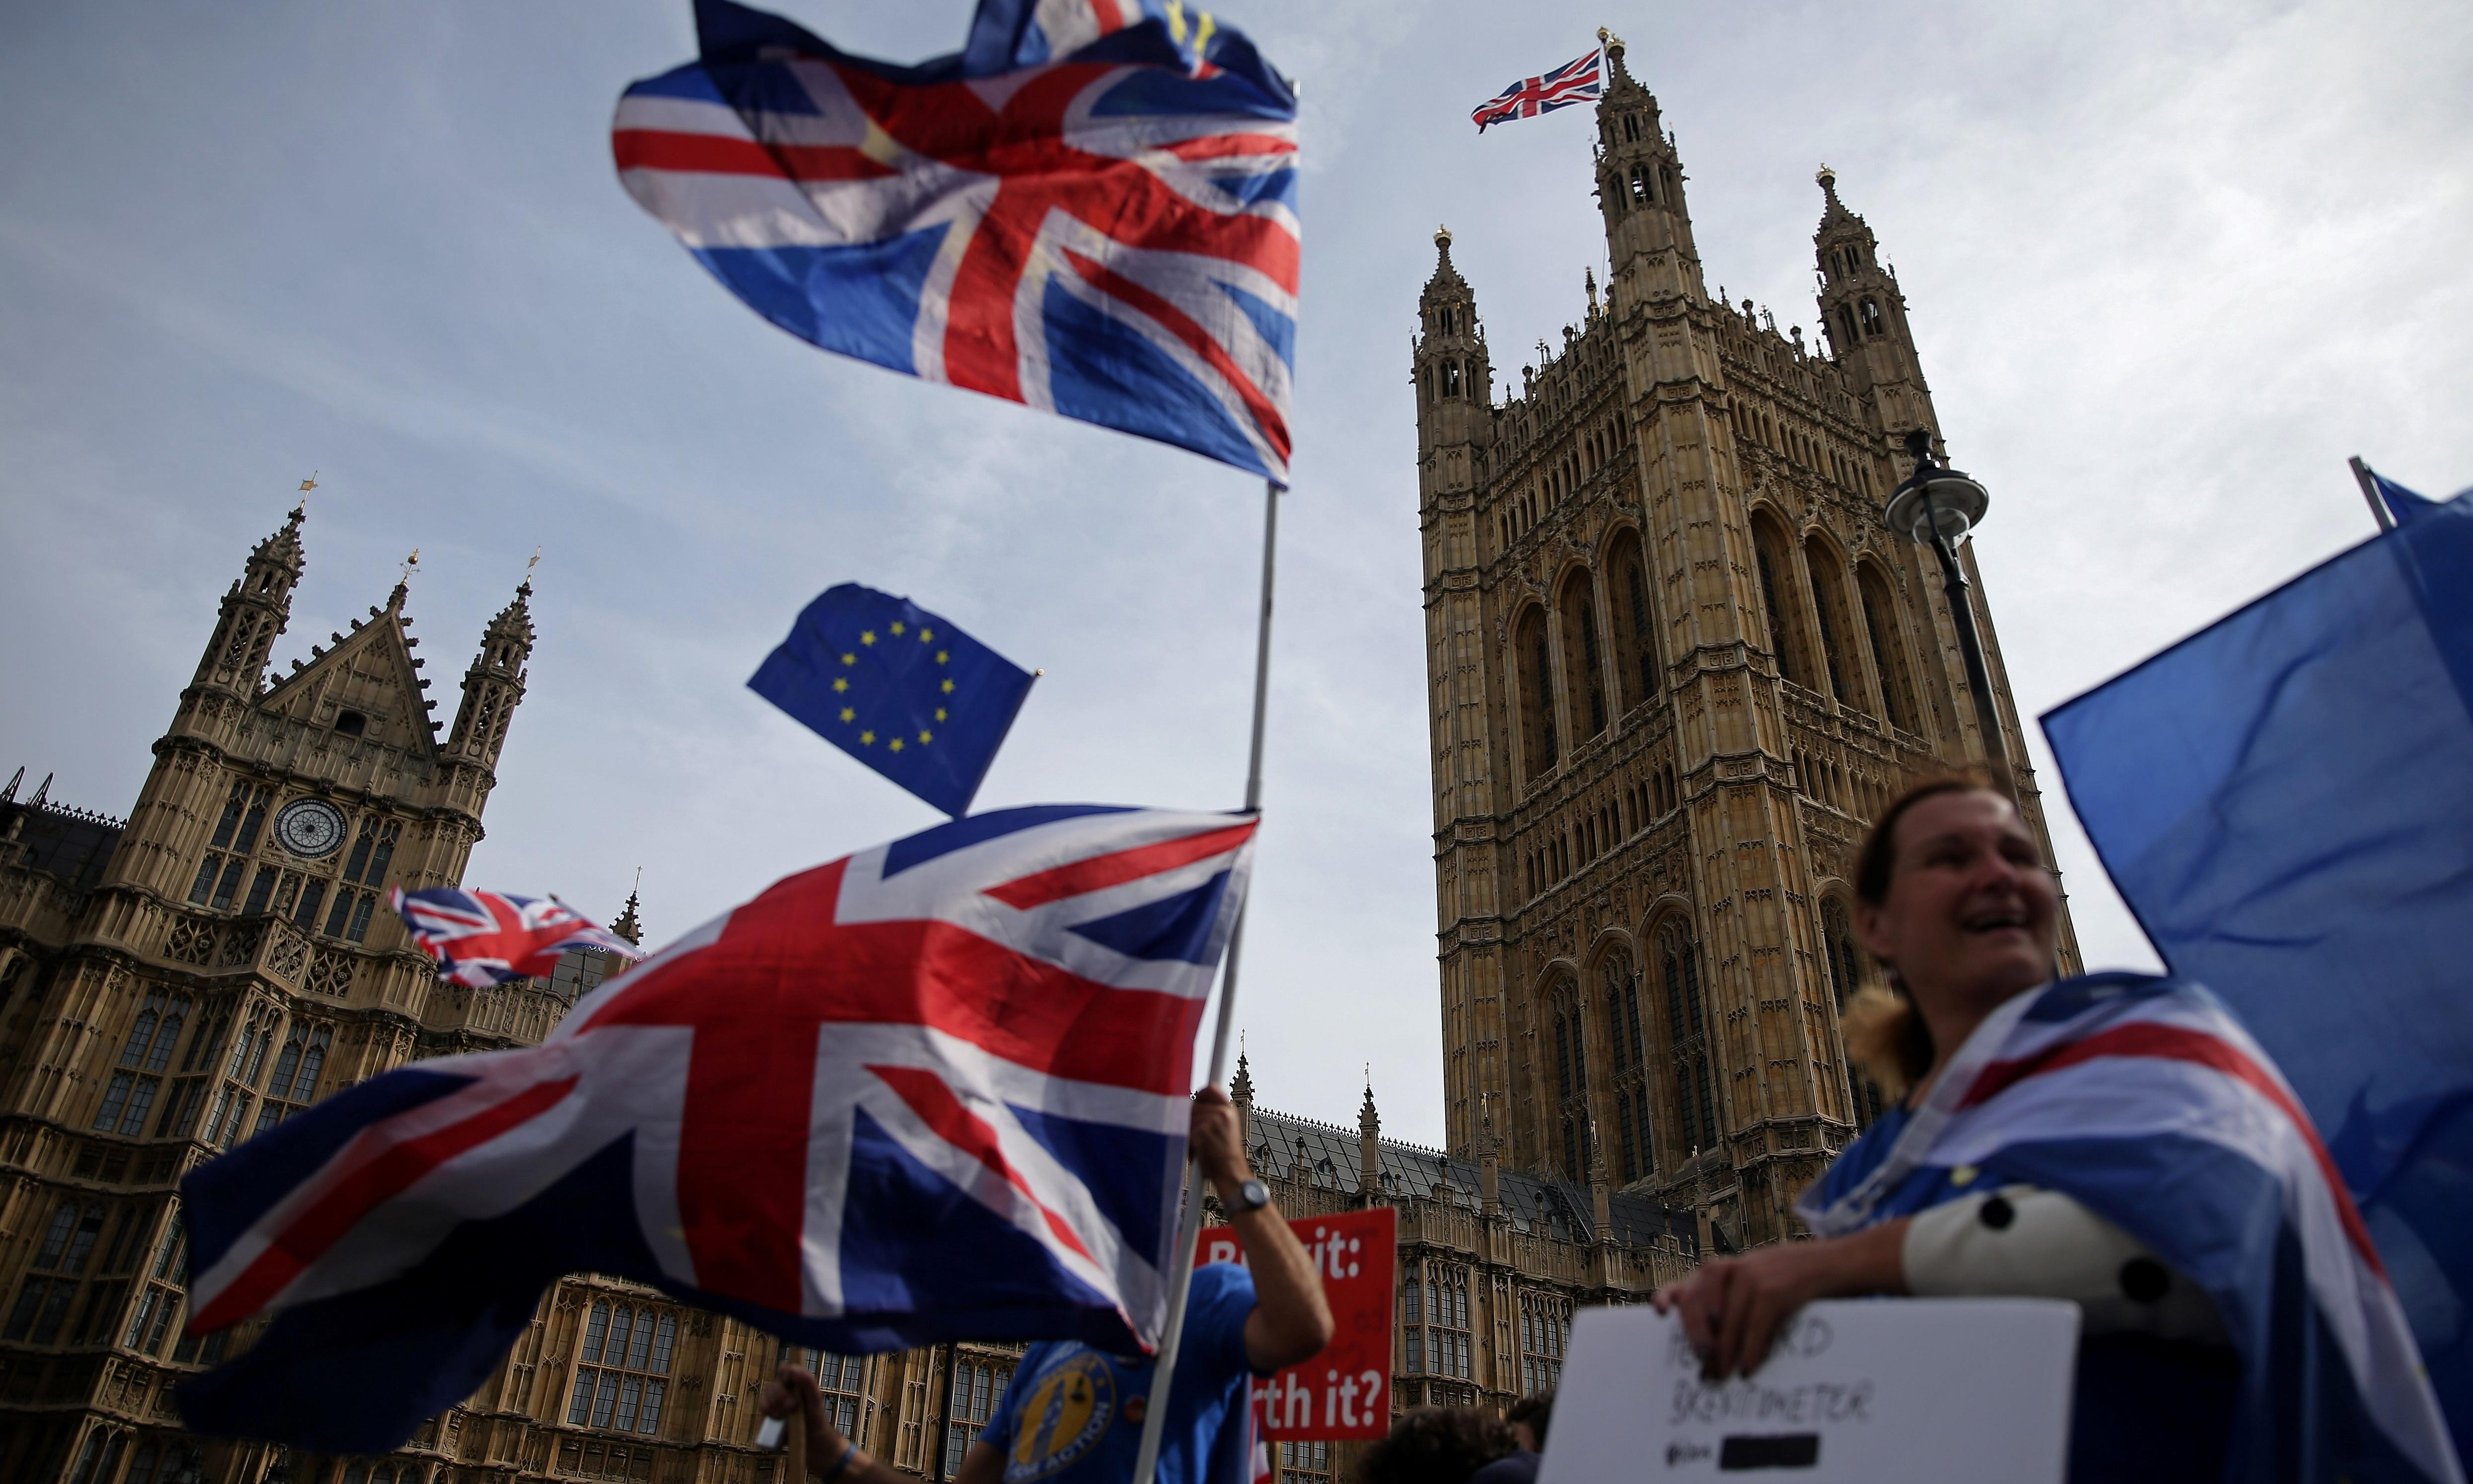 MPs could still alter successful Brexit deal, researchers find